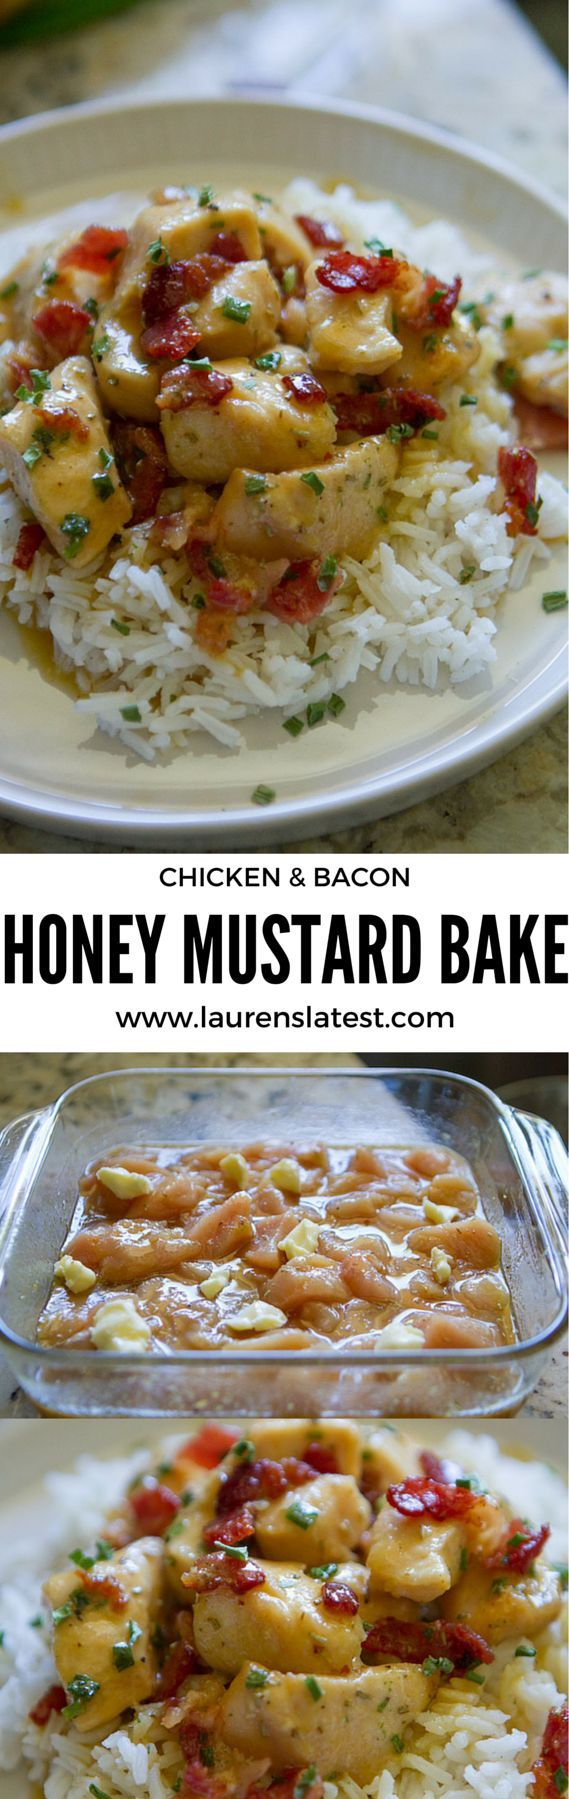 ... Honey Mustard Chicken on Pinterest | Mustard Chicken, Chicken and